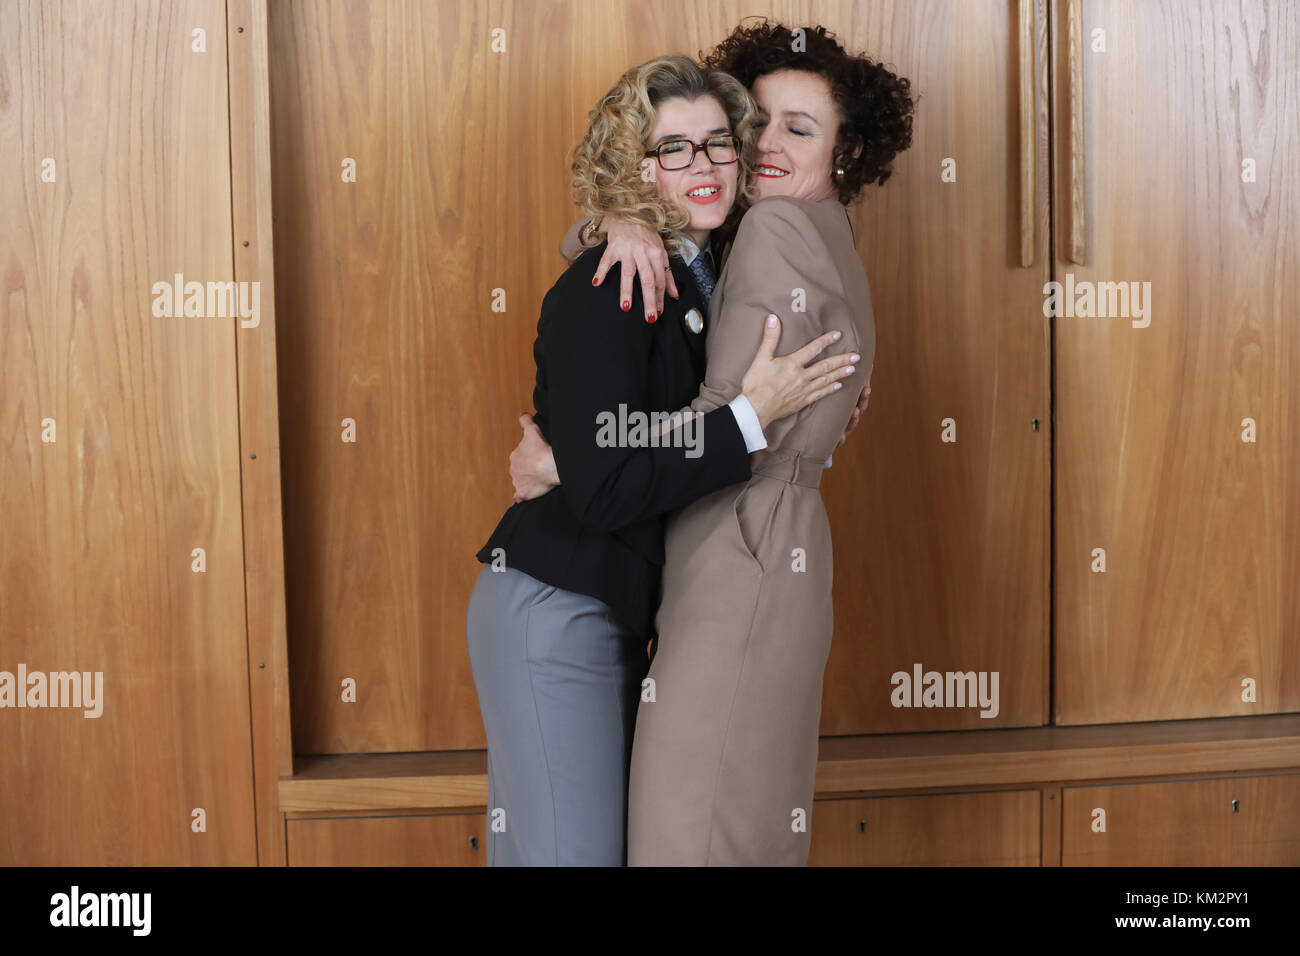 Berlin, Germany. 04th Dec, 2017. Actresses Anke Engelke (L) and Maria Schrader during the shooting of the Amazon - Stock Image